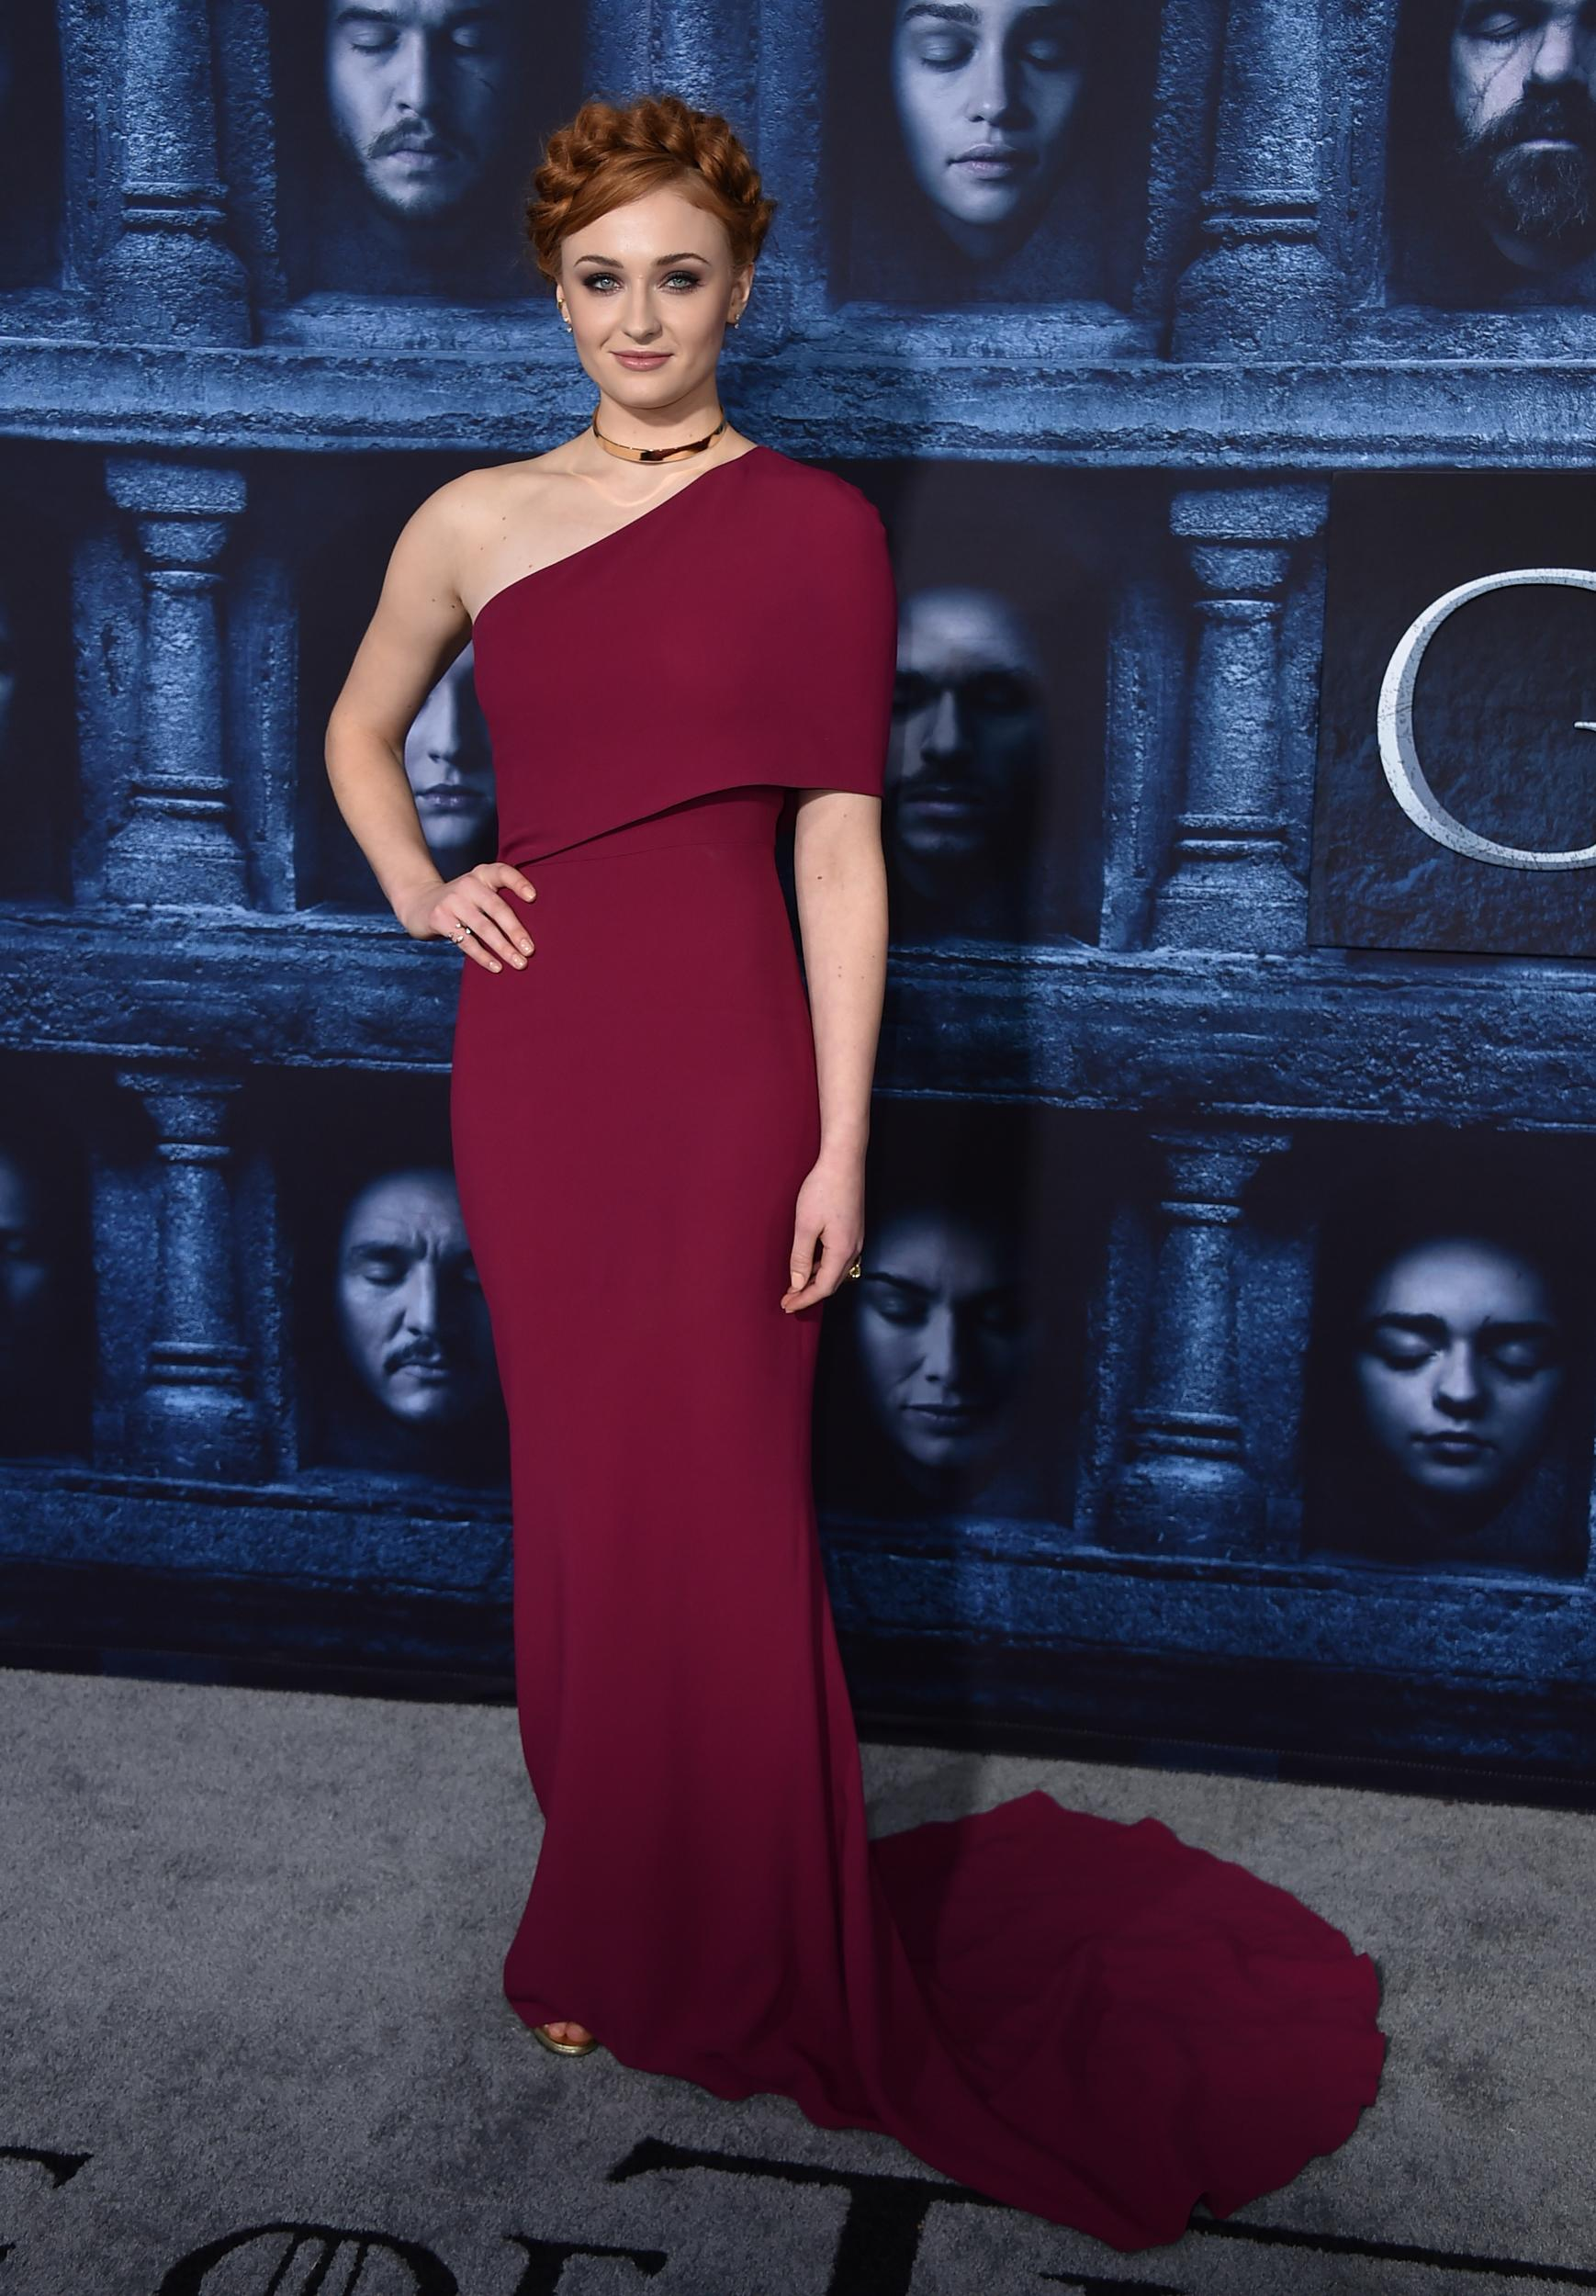 """Sophie Turner attends the season six premiere of  """"Game Of Thrones"""" at TCL Chinese Theatre on Sunday, Apr. 10, 2016 in Los Angeles. (Photo by Jordan Strauss/Invision/AP)"""